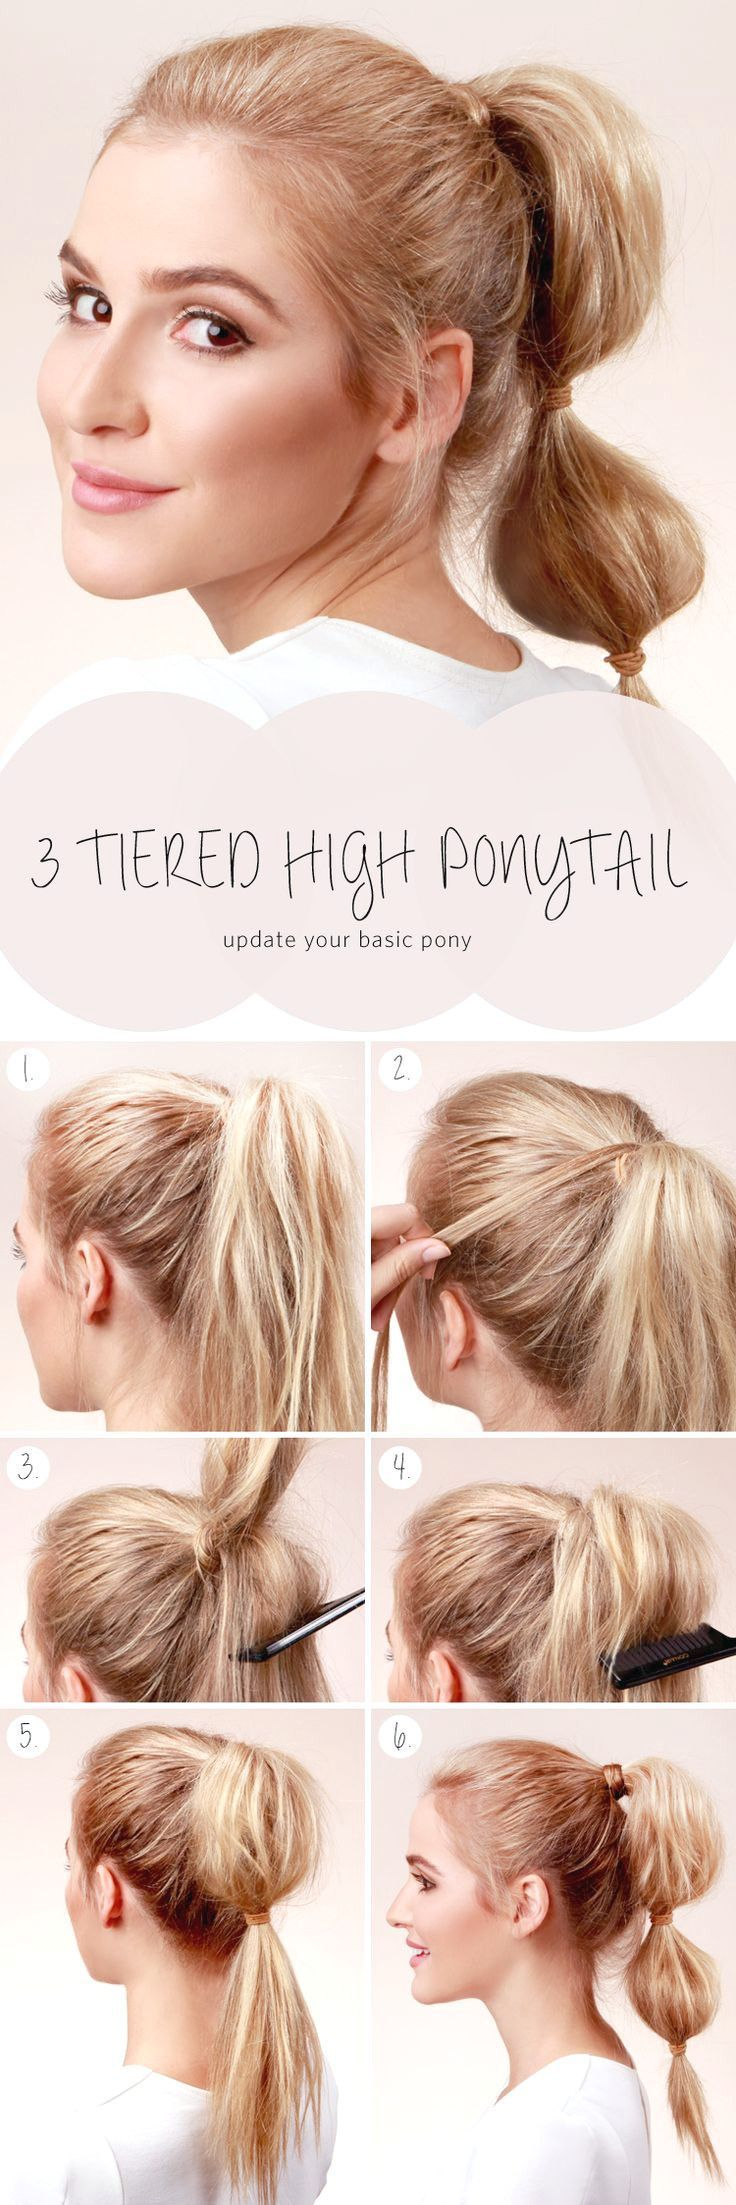 10 quick and easy ideas on how to make a pretty hairstyle, #Easy #hairstyle #Ideas #Pretty